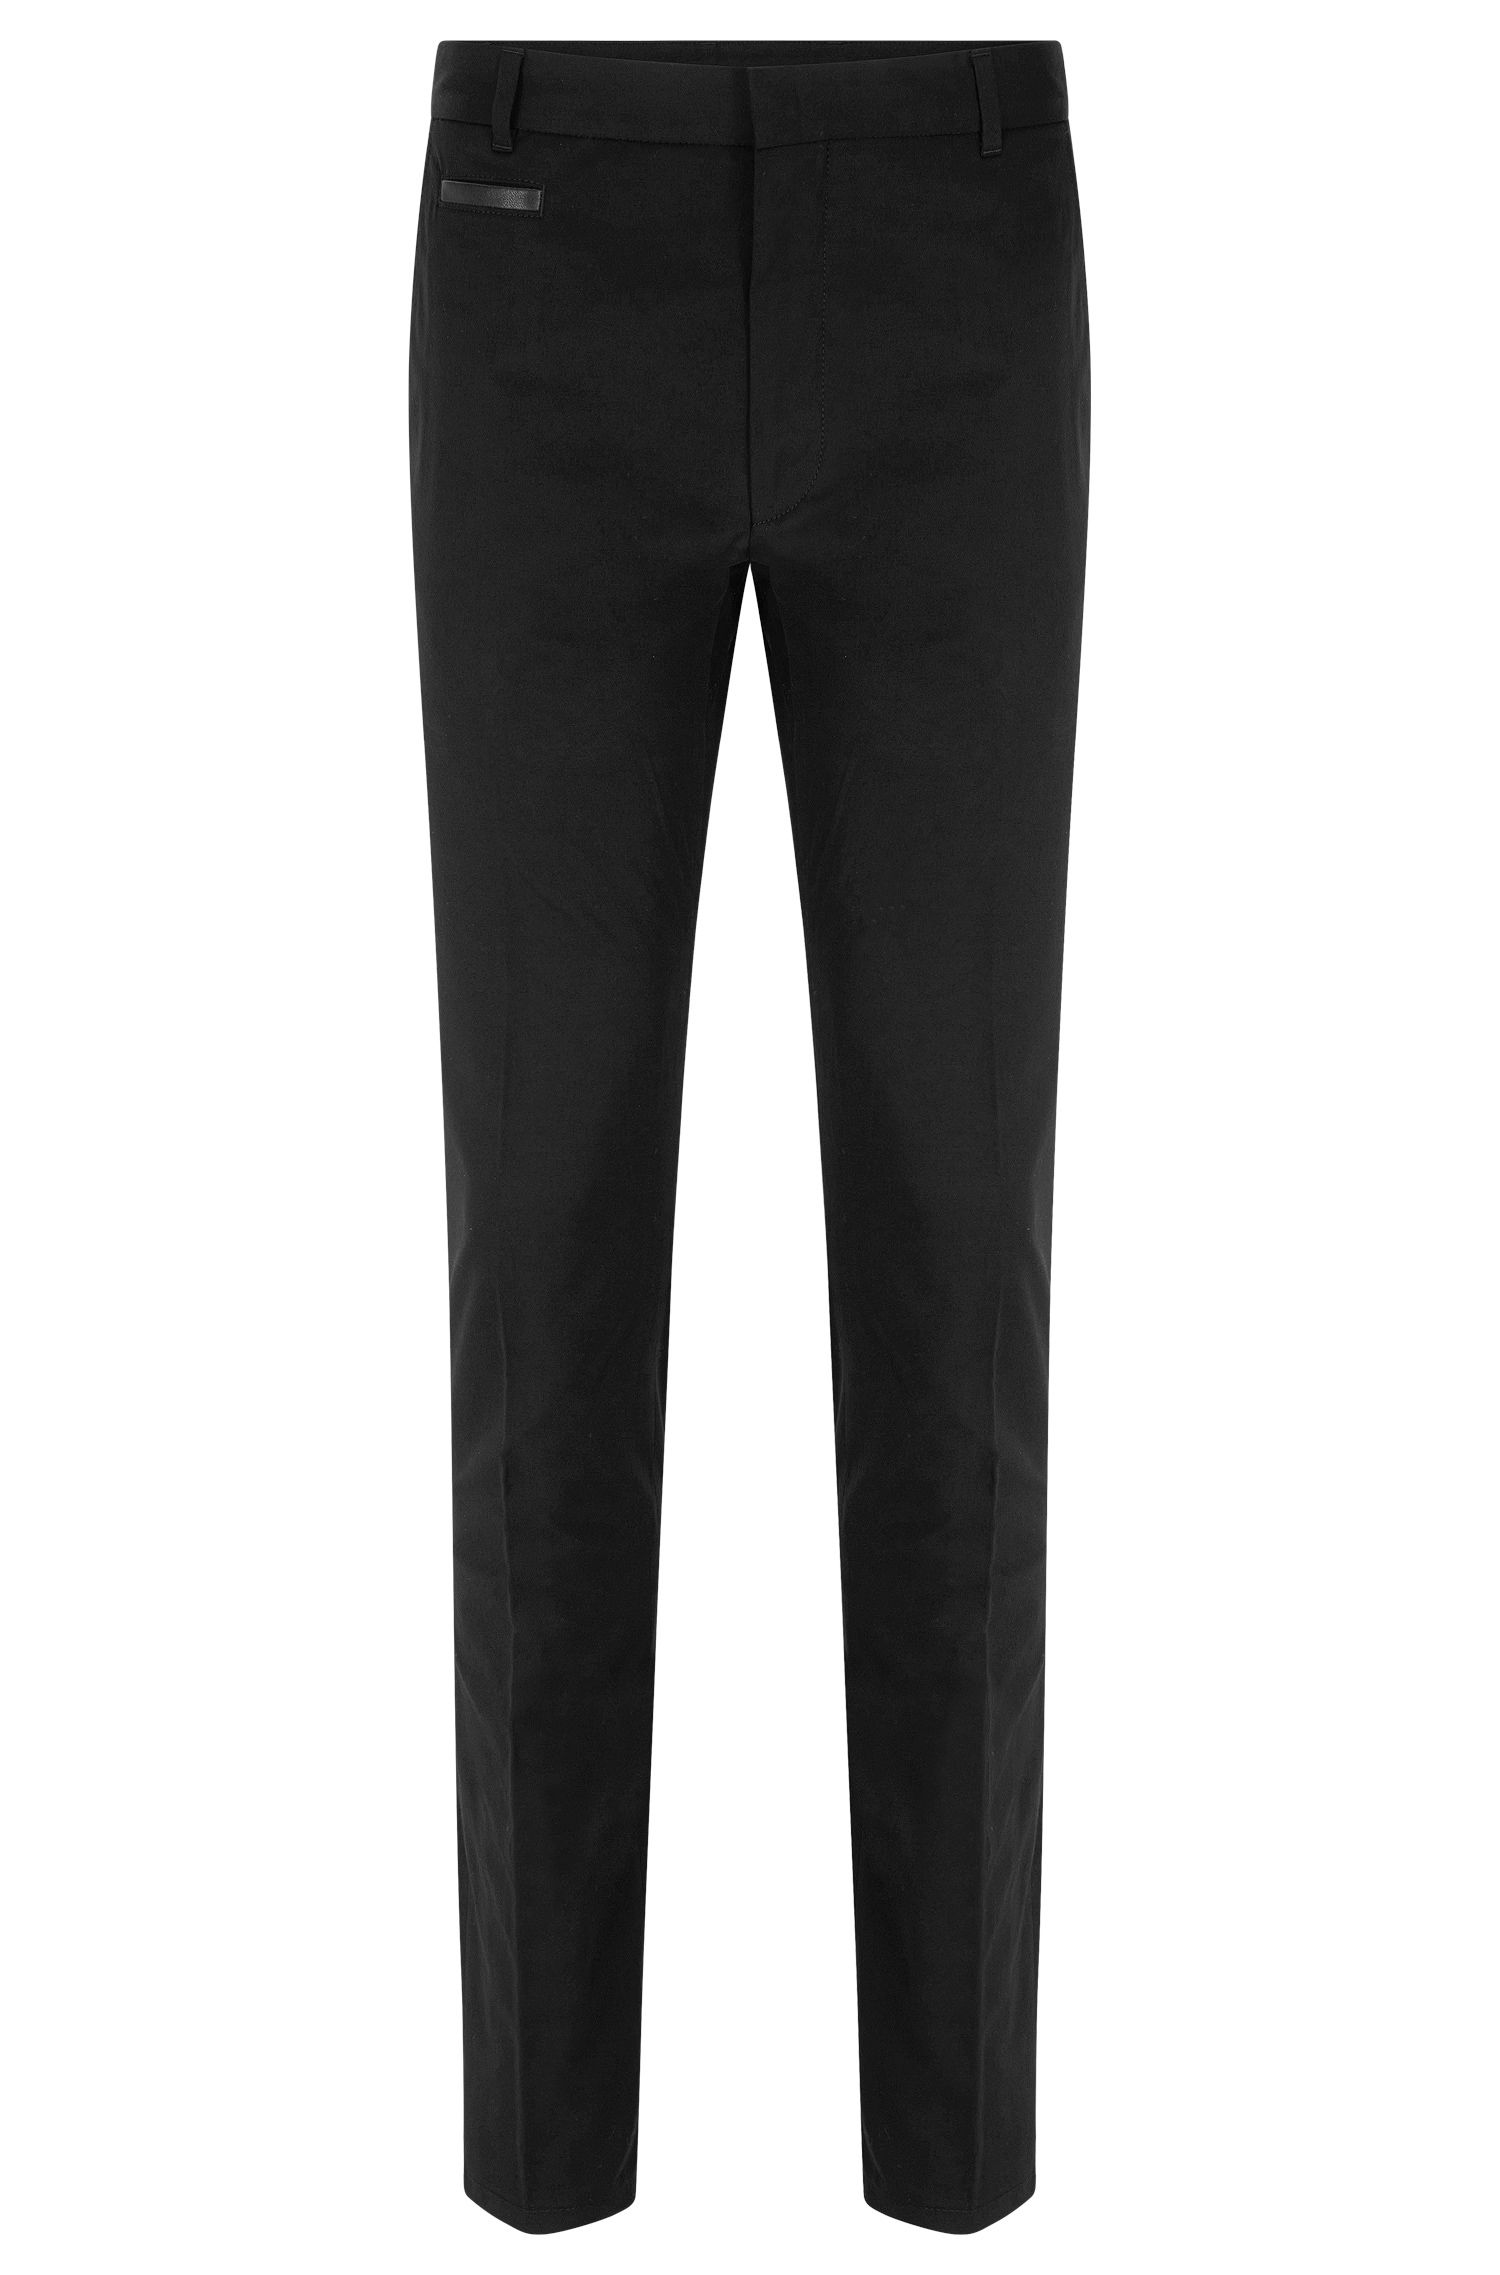 'Harlyn' | Extra-Slim Fit, Stretch Cotton Pant